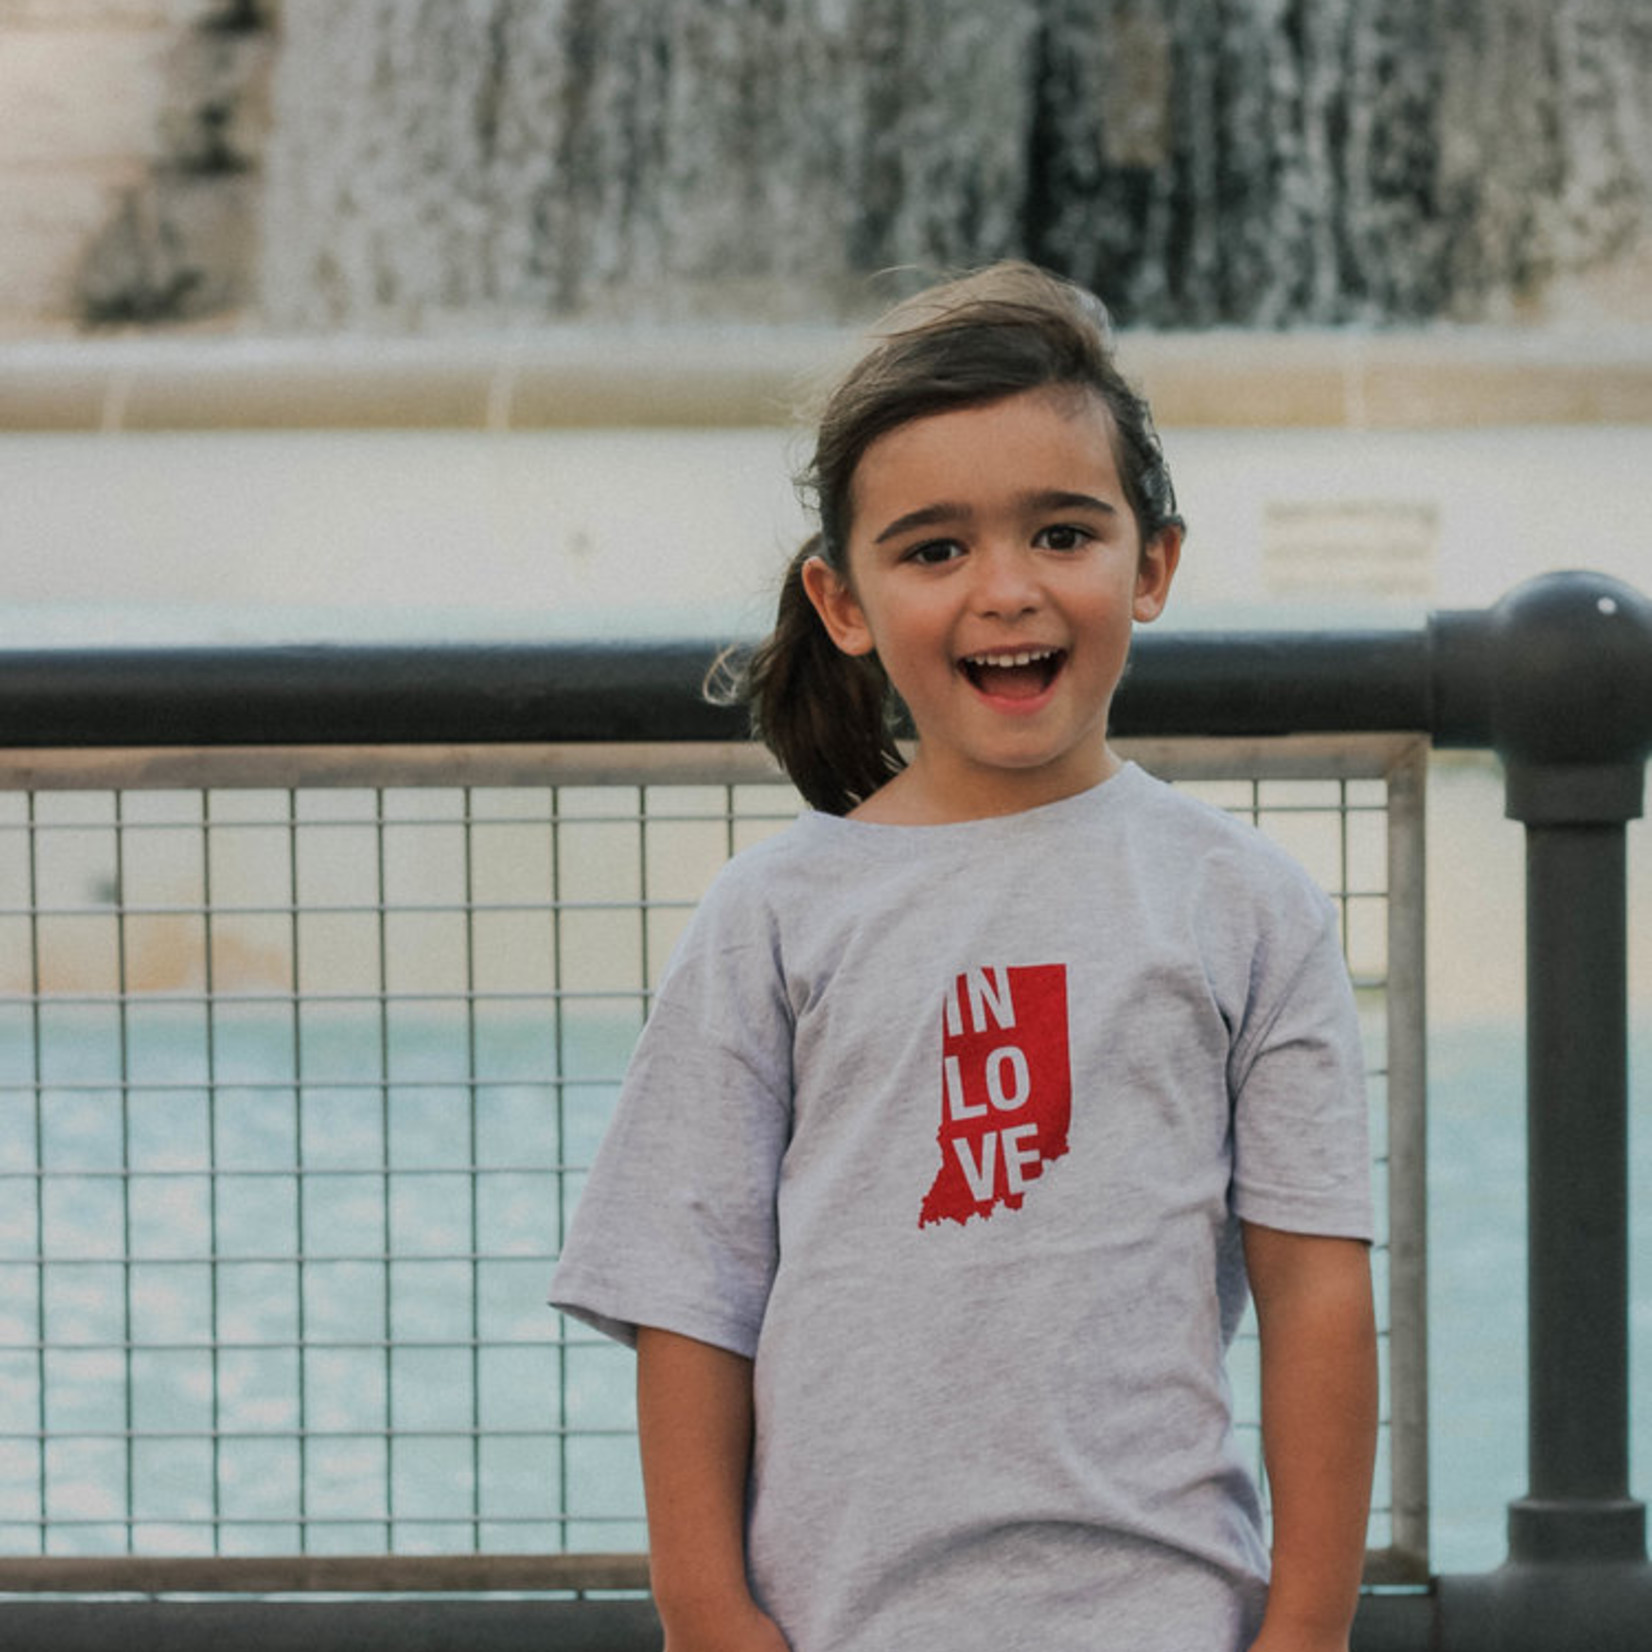 IN Love Toddler Tee